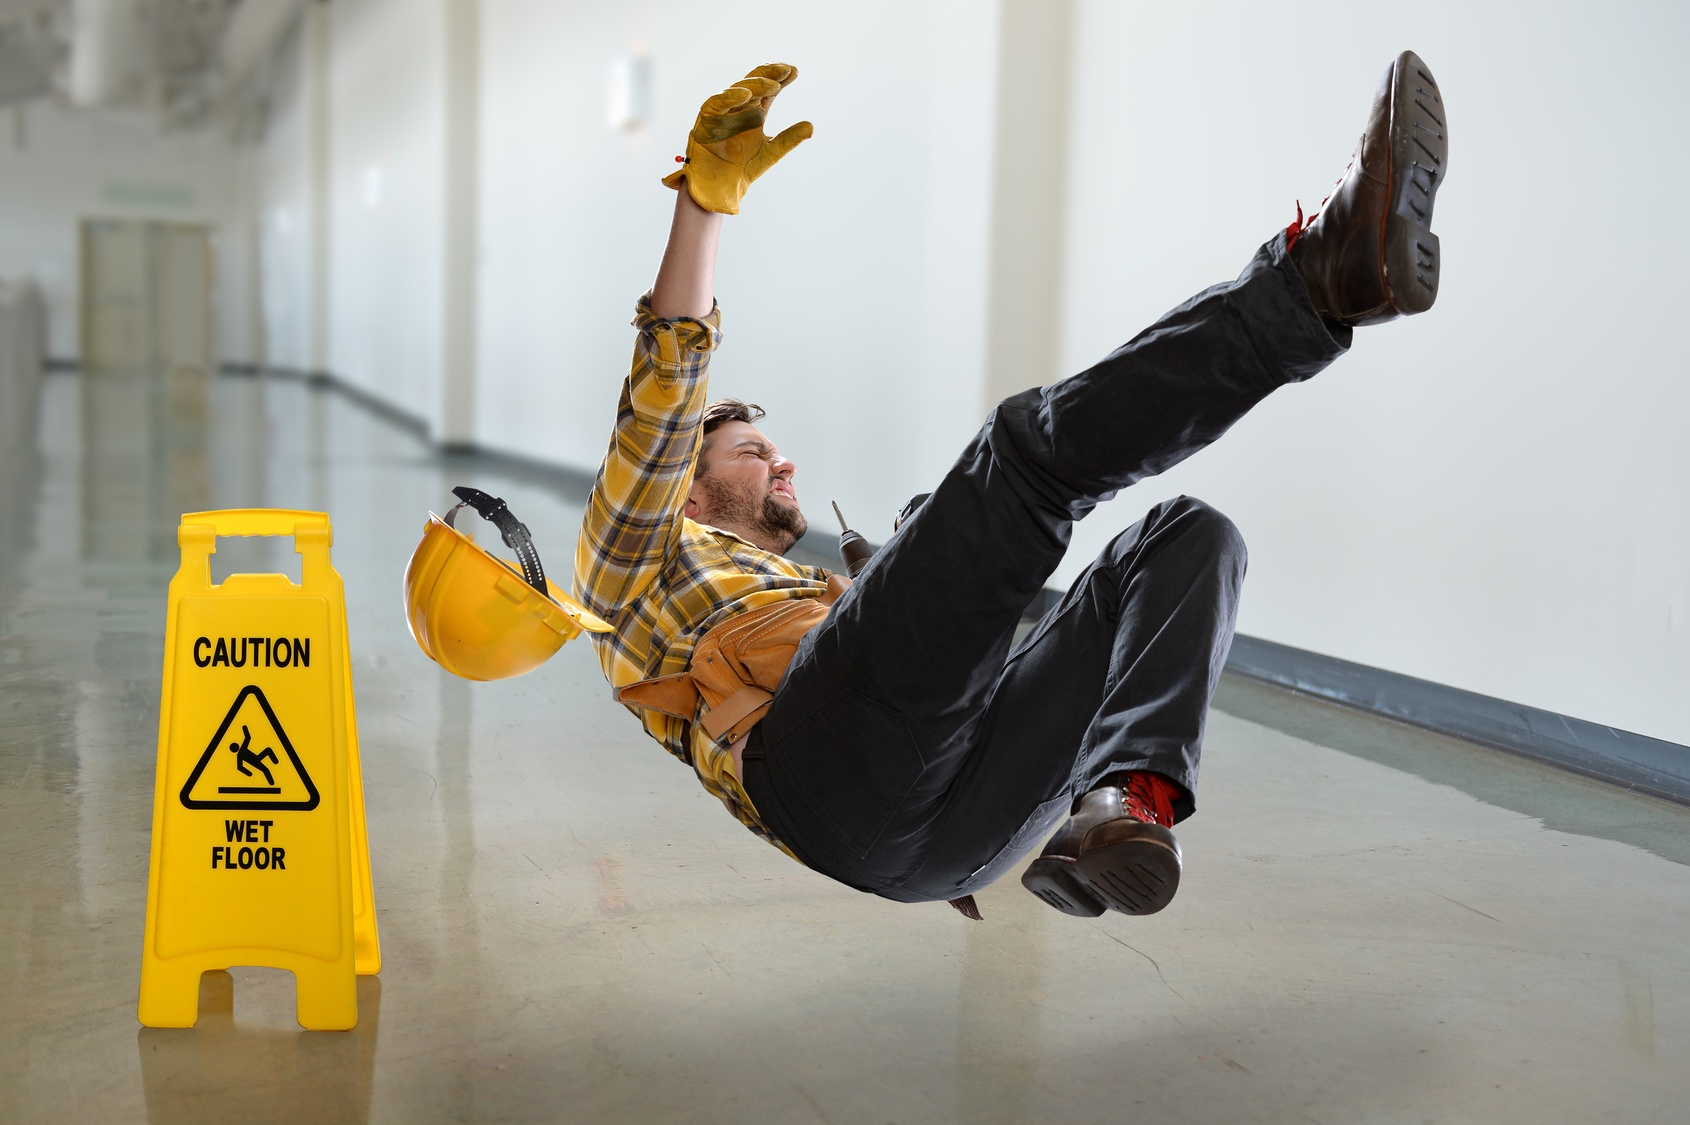 Man slipping and falling on floor with wet floor caution sign